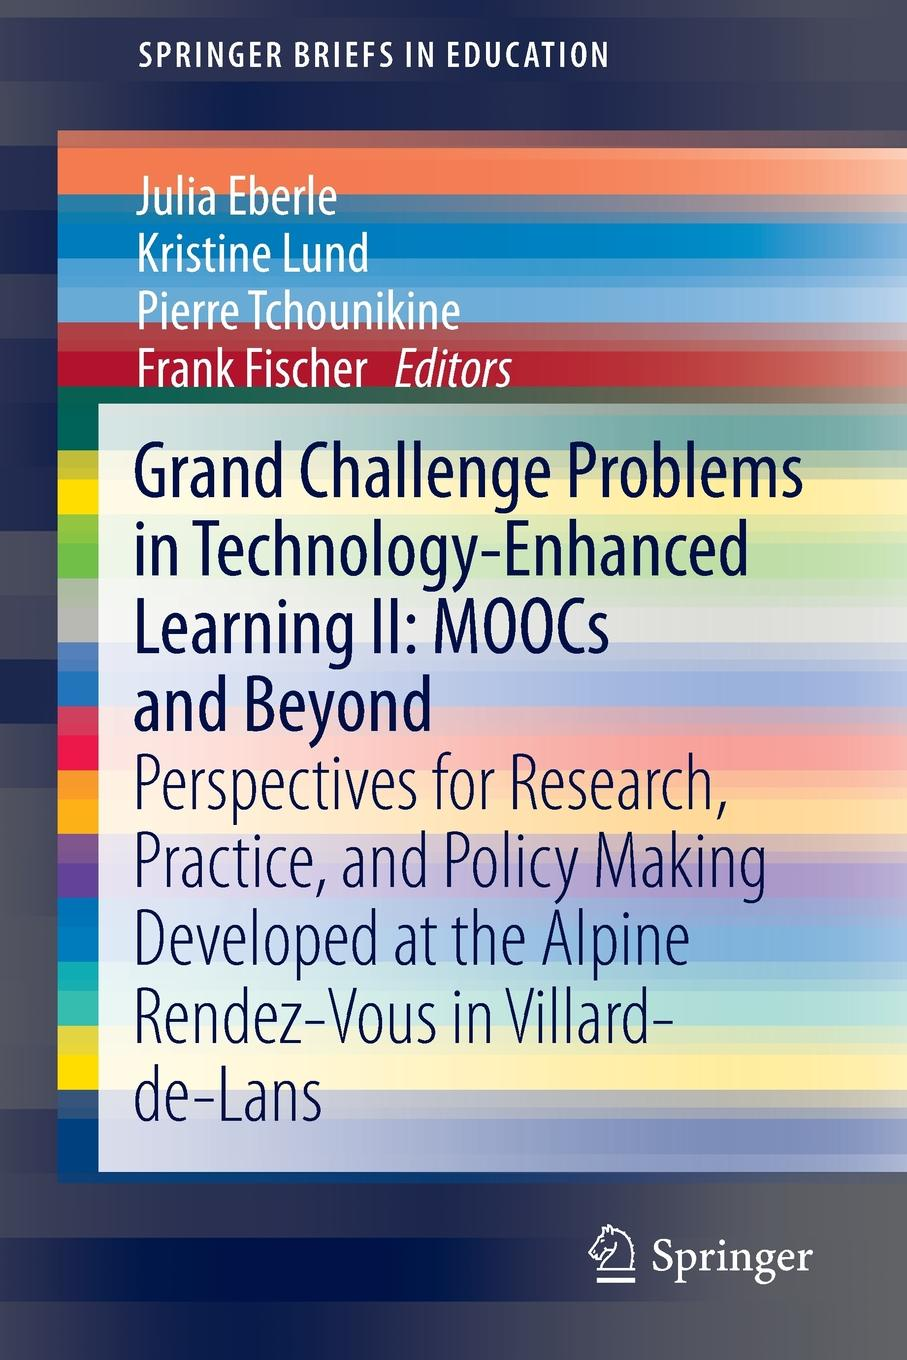 Grand Challenges in Technology Enhanced Learning 2. Perspectives of Research, Practice, and Policy Making Developed at the Alpine Rendez-Vous 2013 knowledge to policy making the most of development research